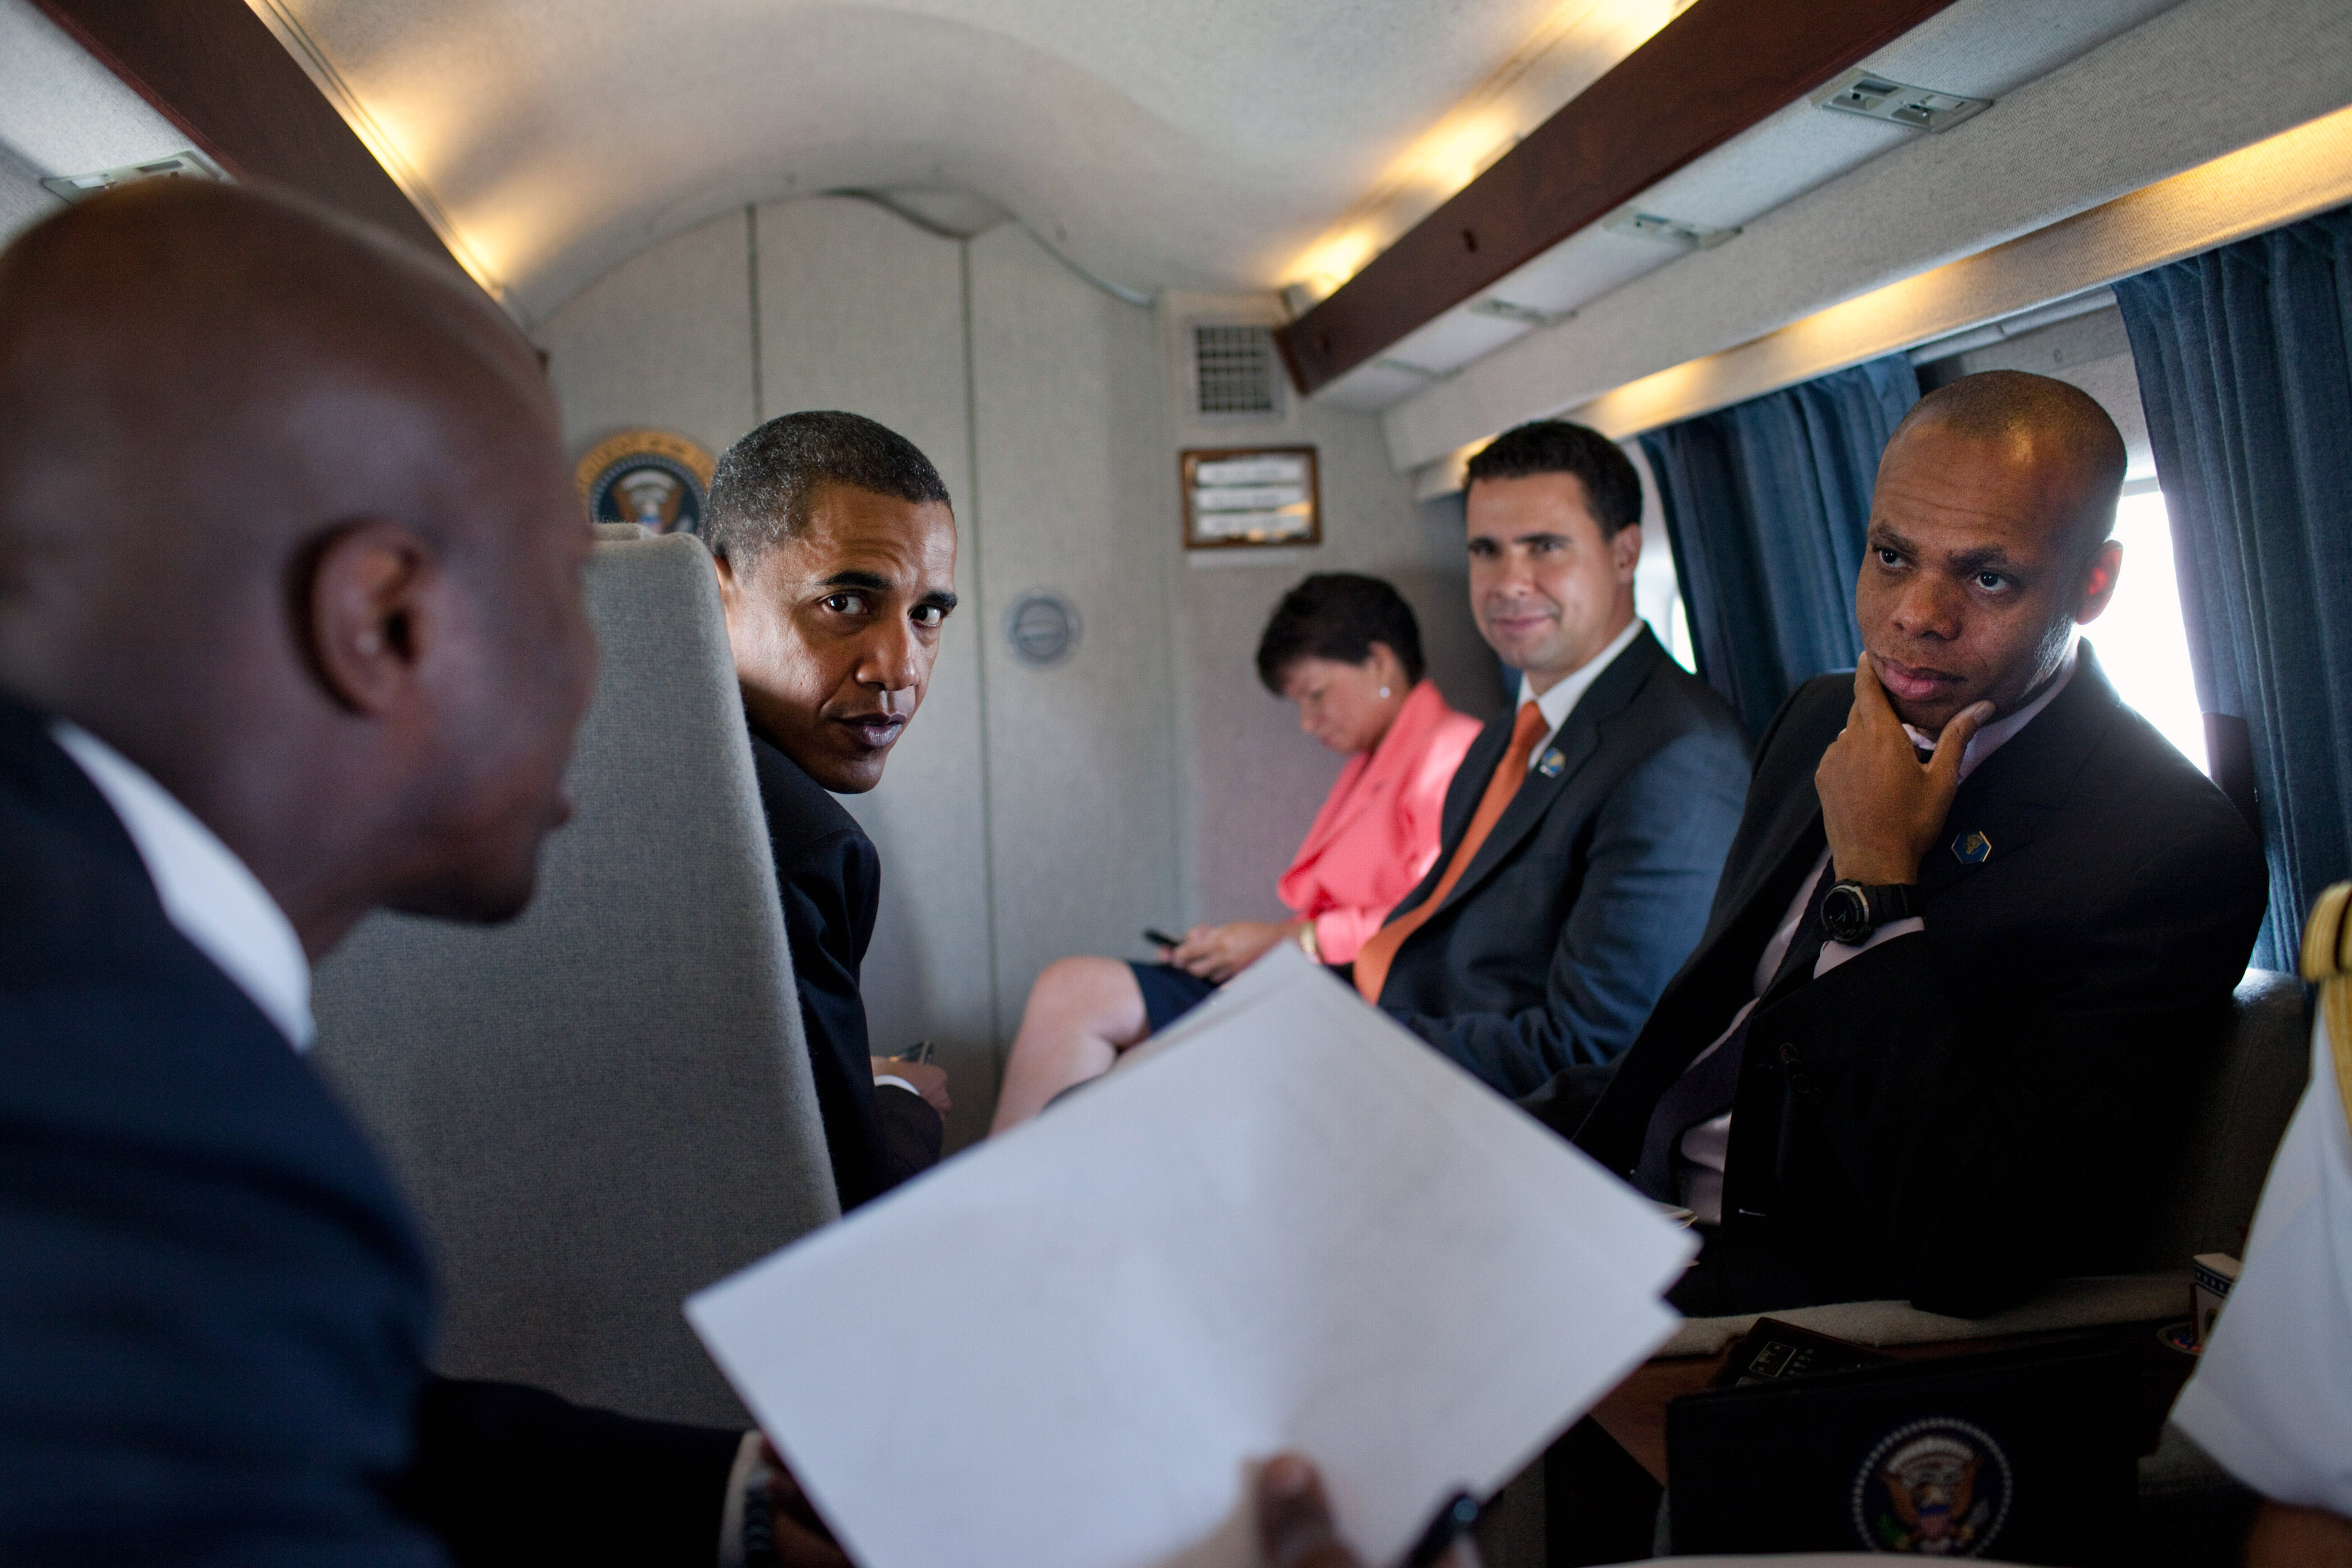 https://upload.wikimedia.org/wikipedia/commons/f/f0/President_Obama_talks_with_personal_aides_aboard_Marine_One,_Aug,_2010..jpg